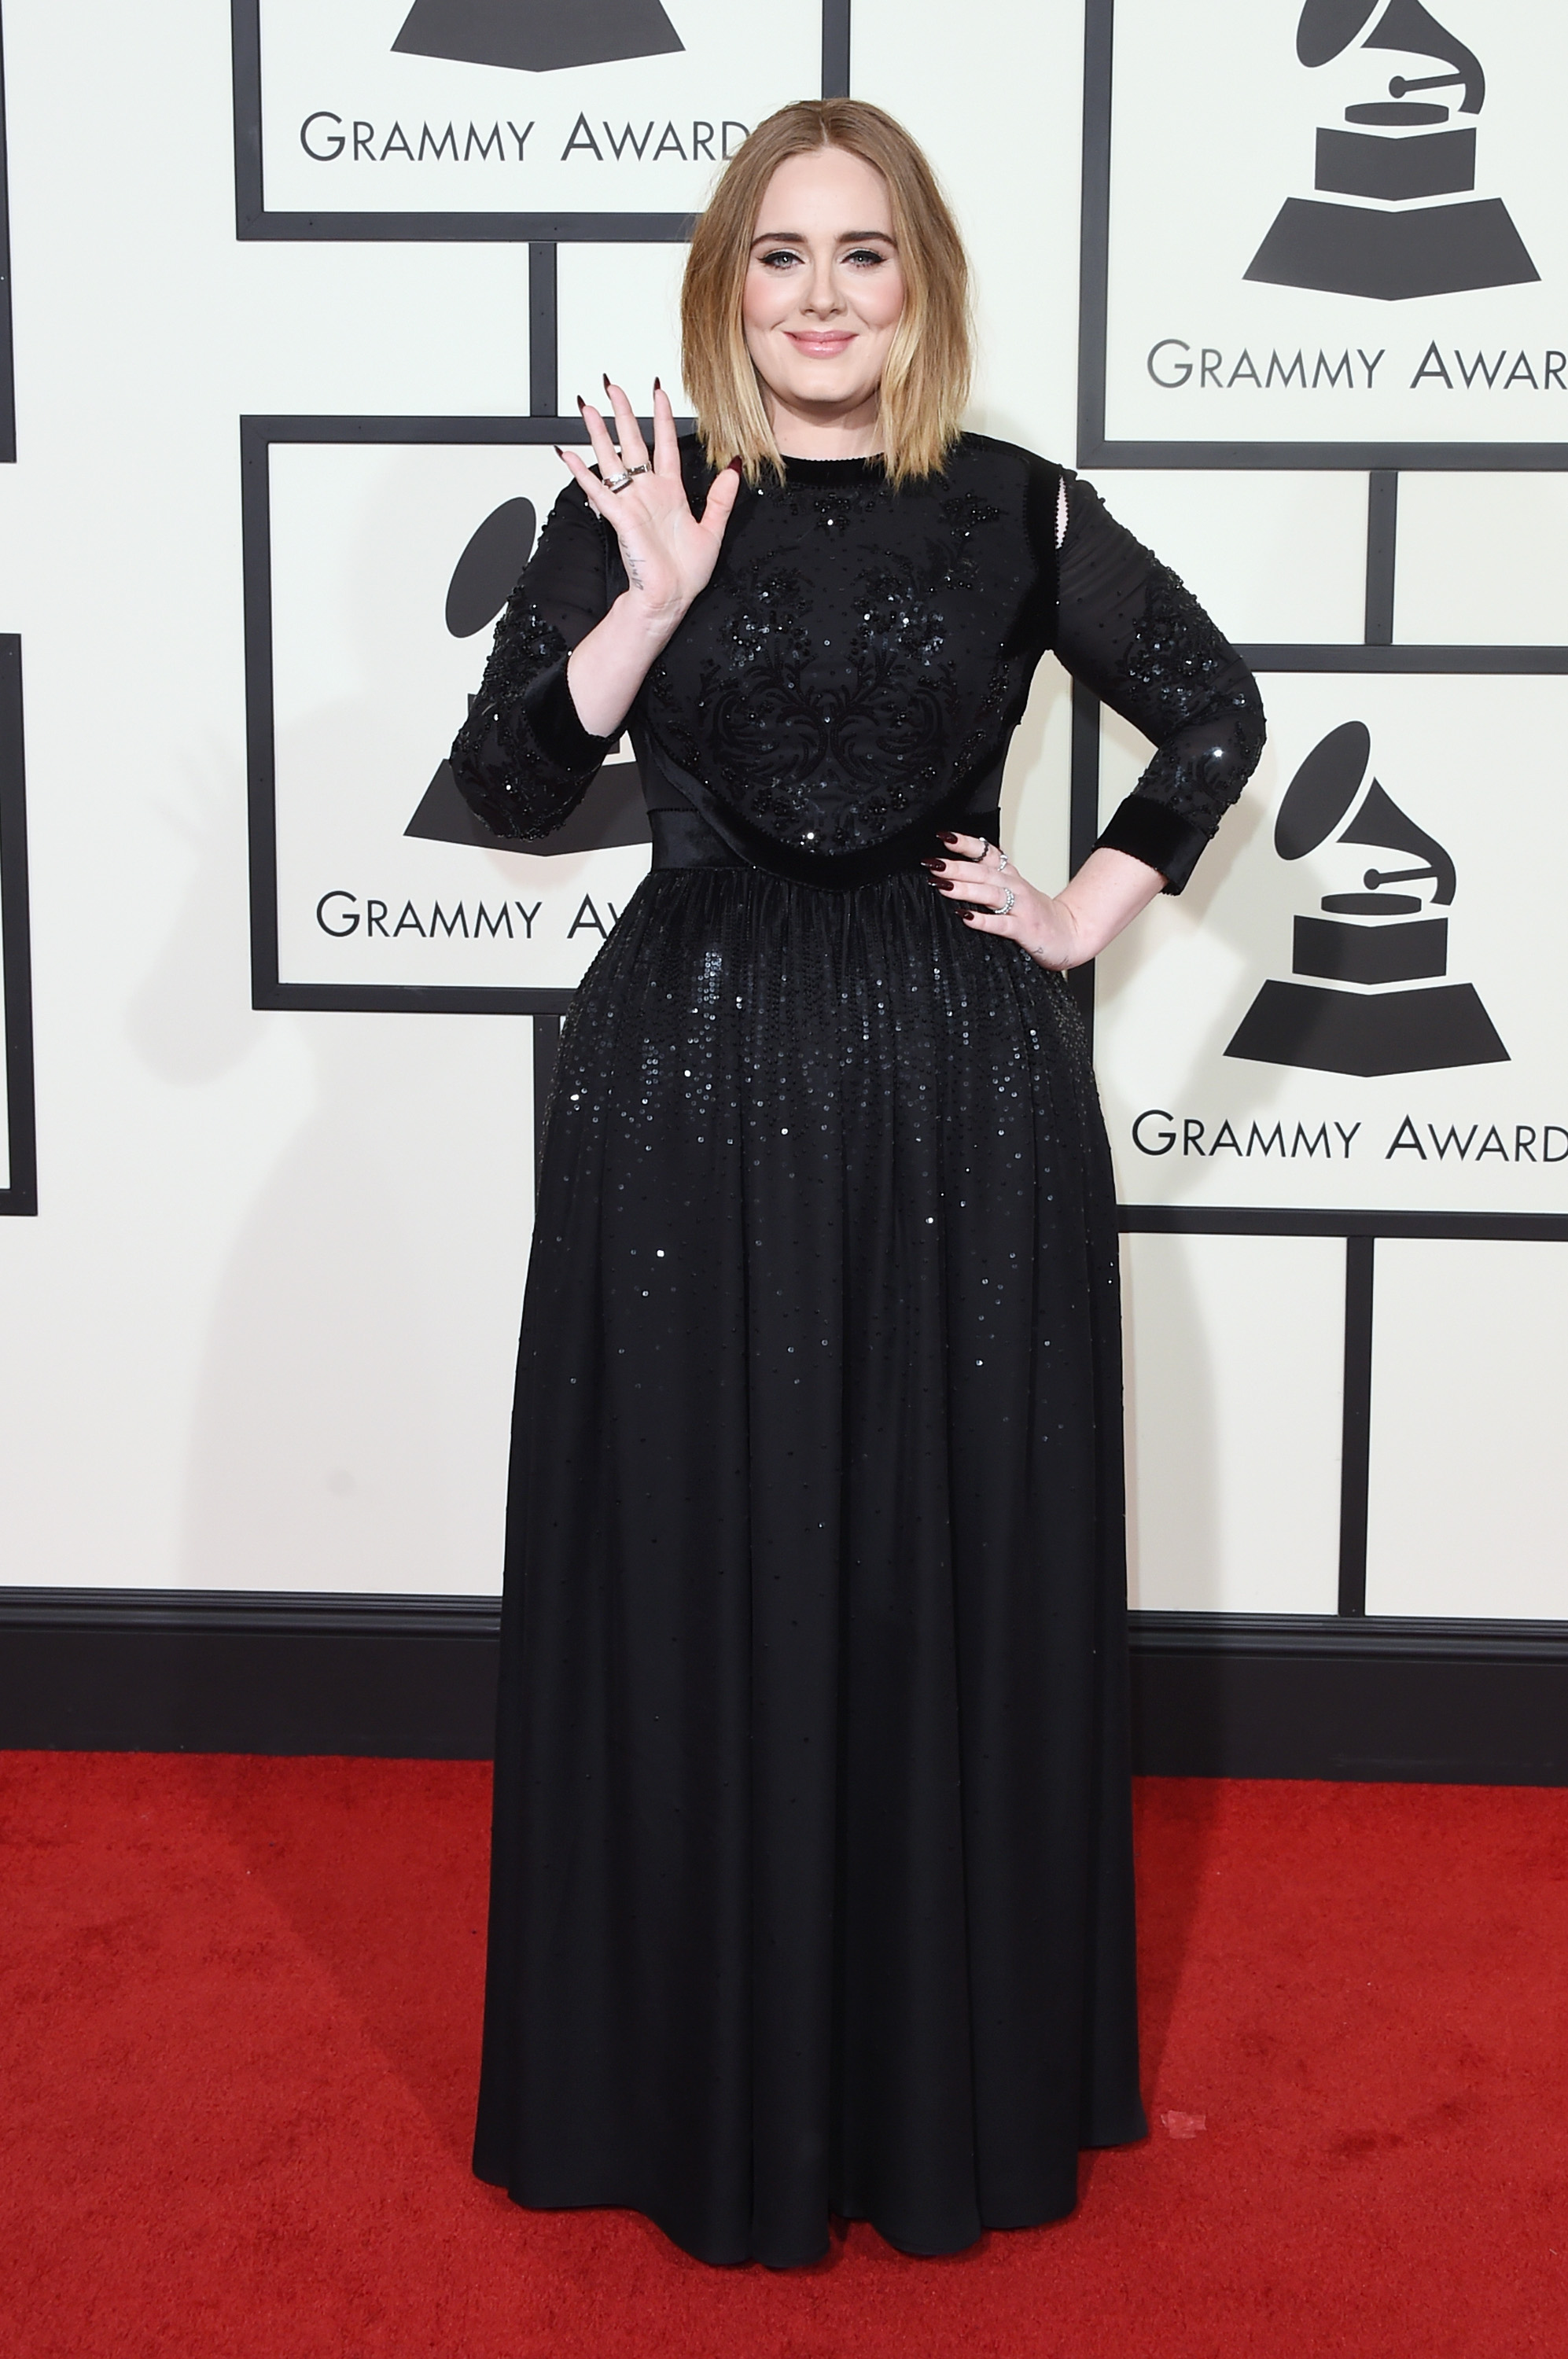 Adele attends the 58th GRAMMY Awards at Staples Center on Feb. 15, 2016 in Los Angeles.